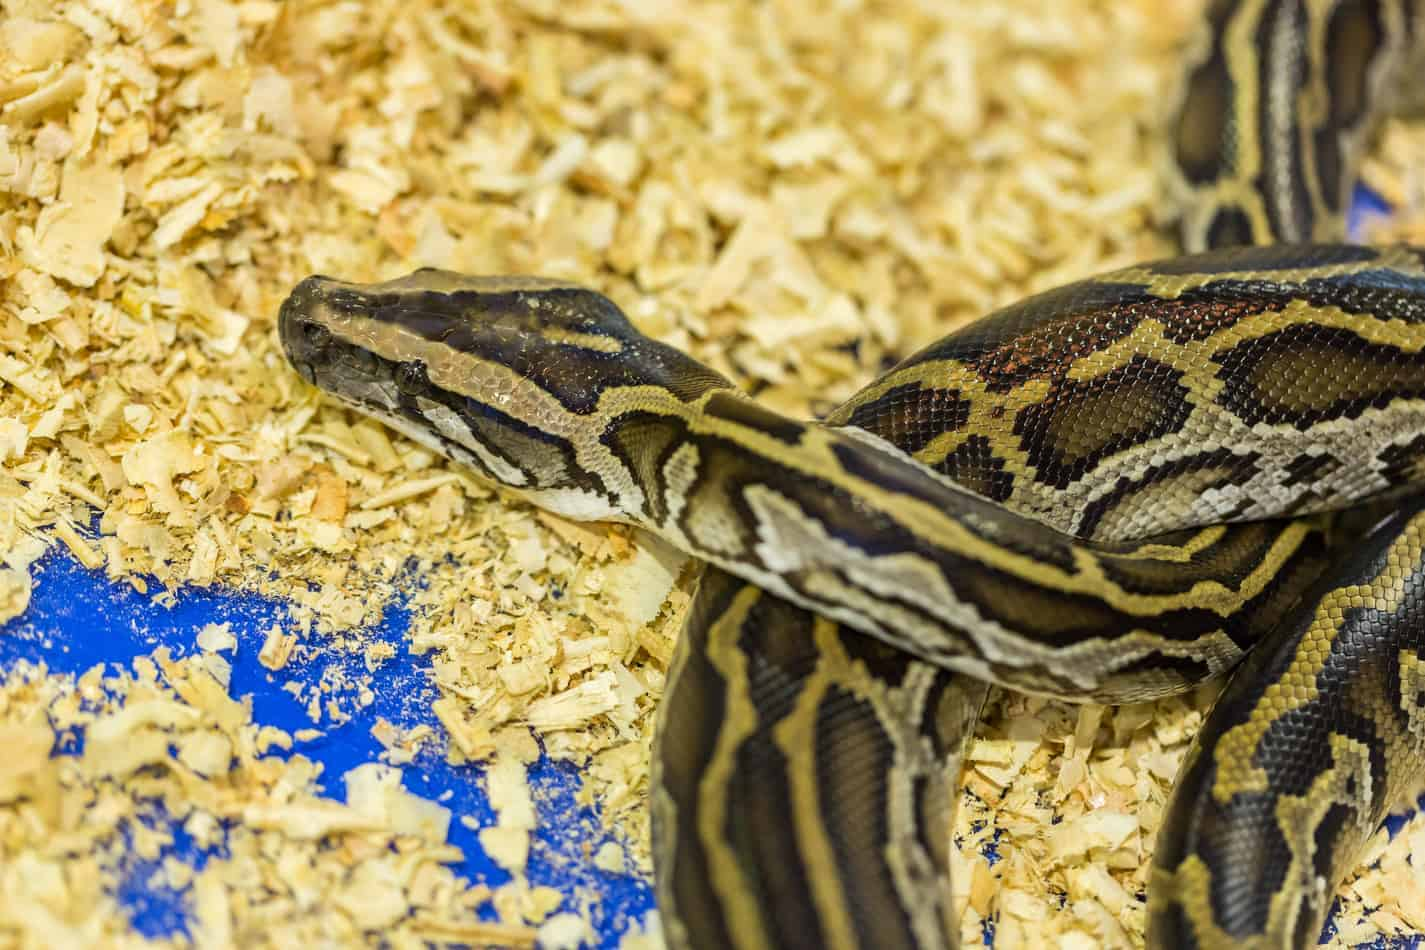 Recommended Terrarium Size for a Ball Python?